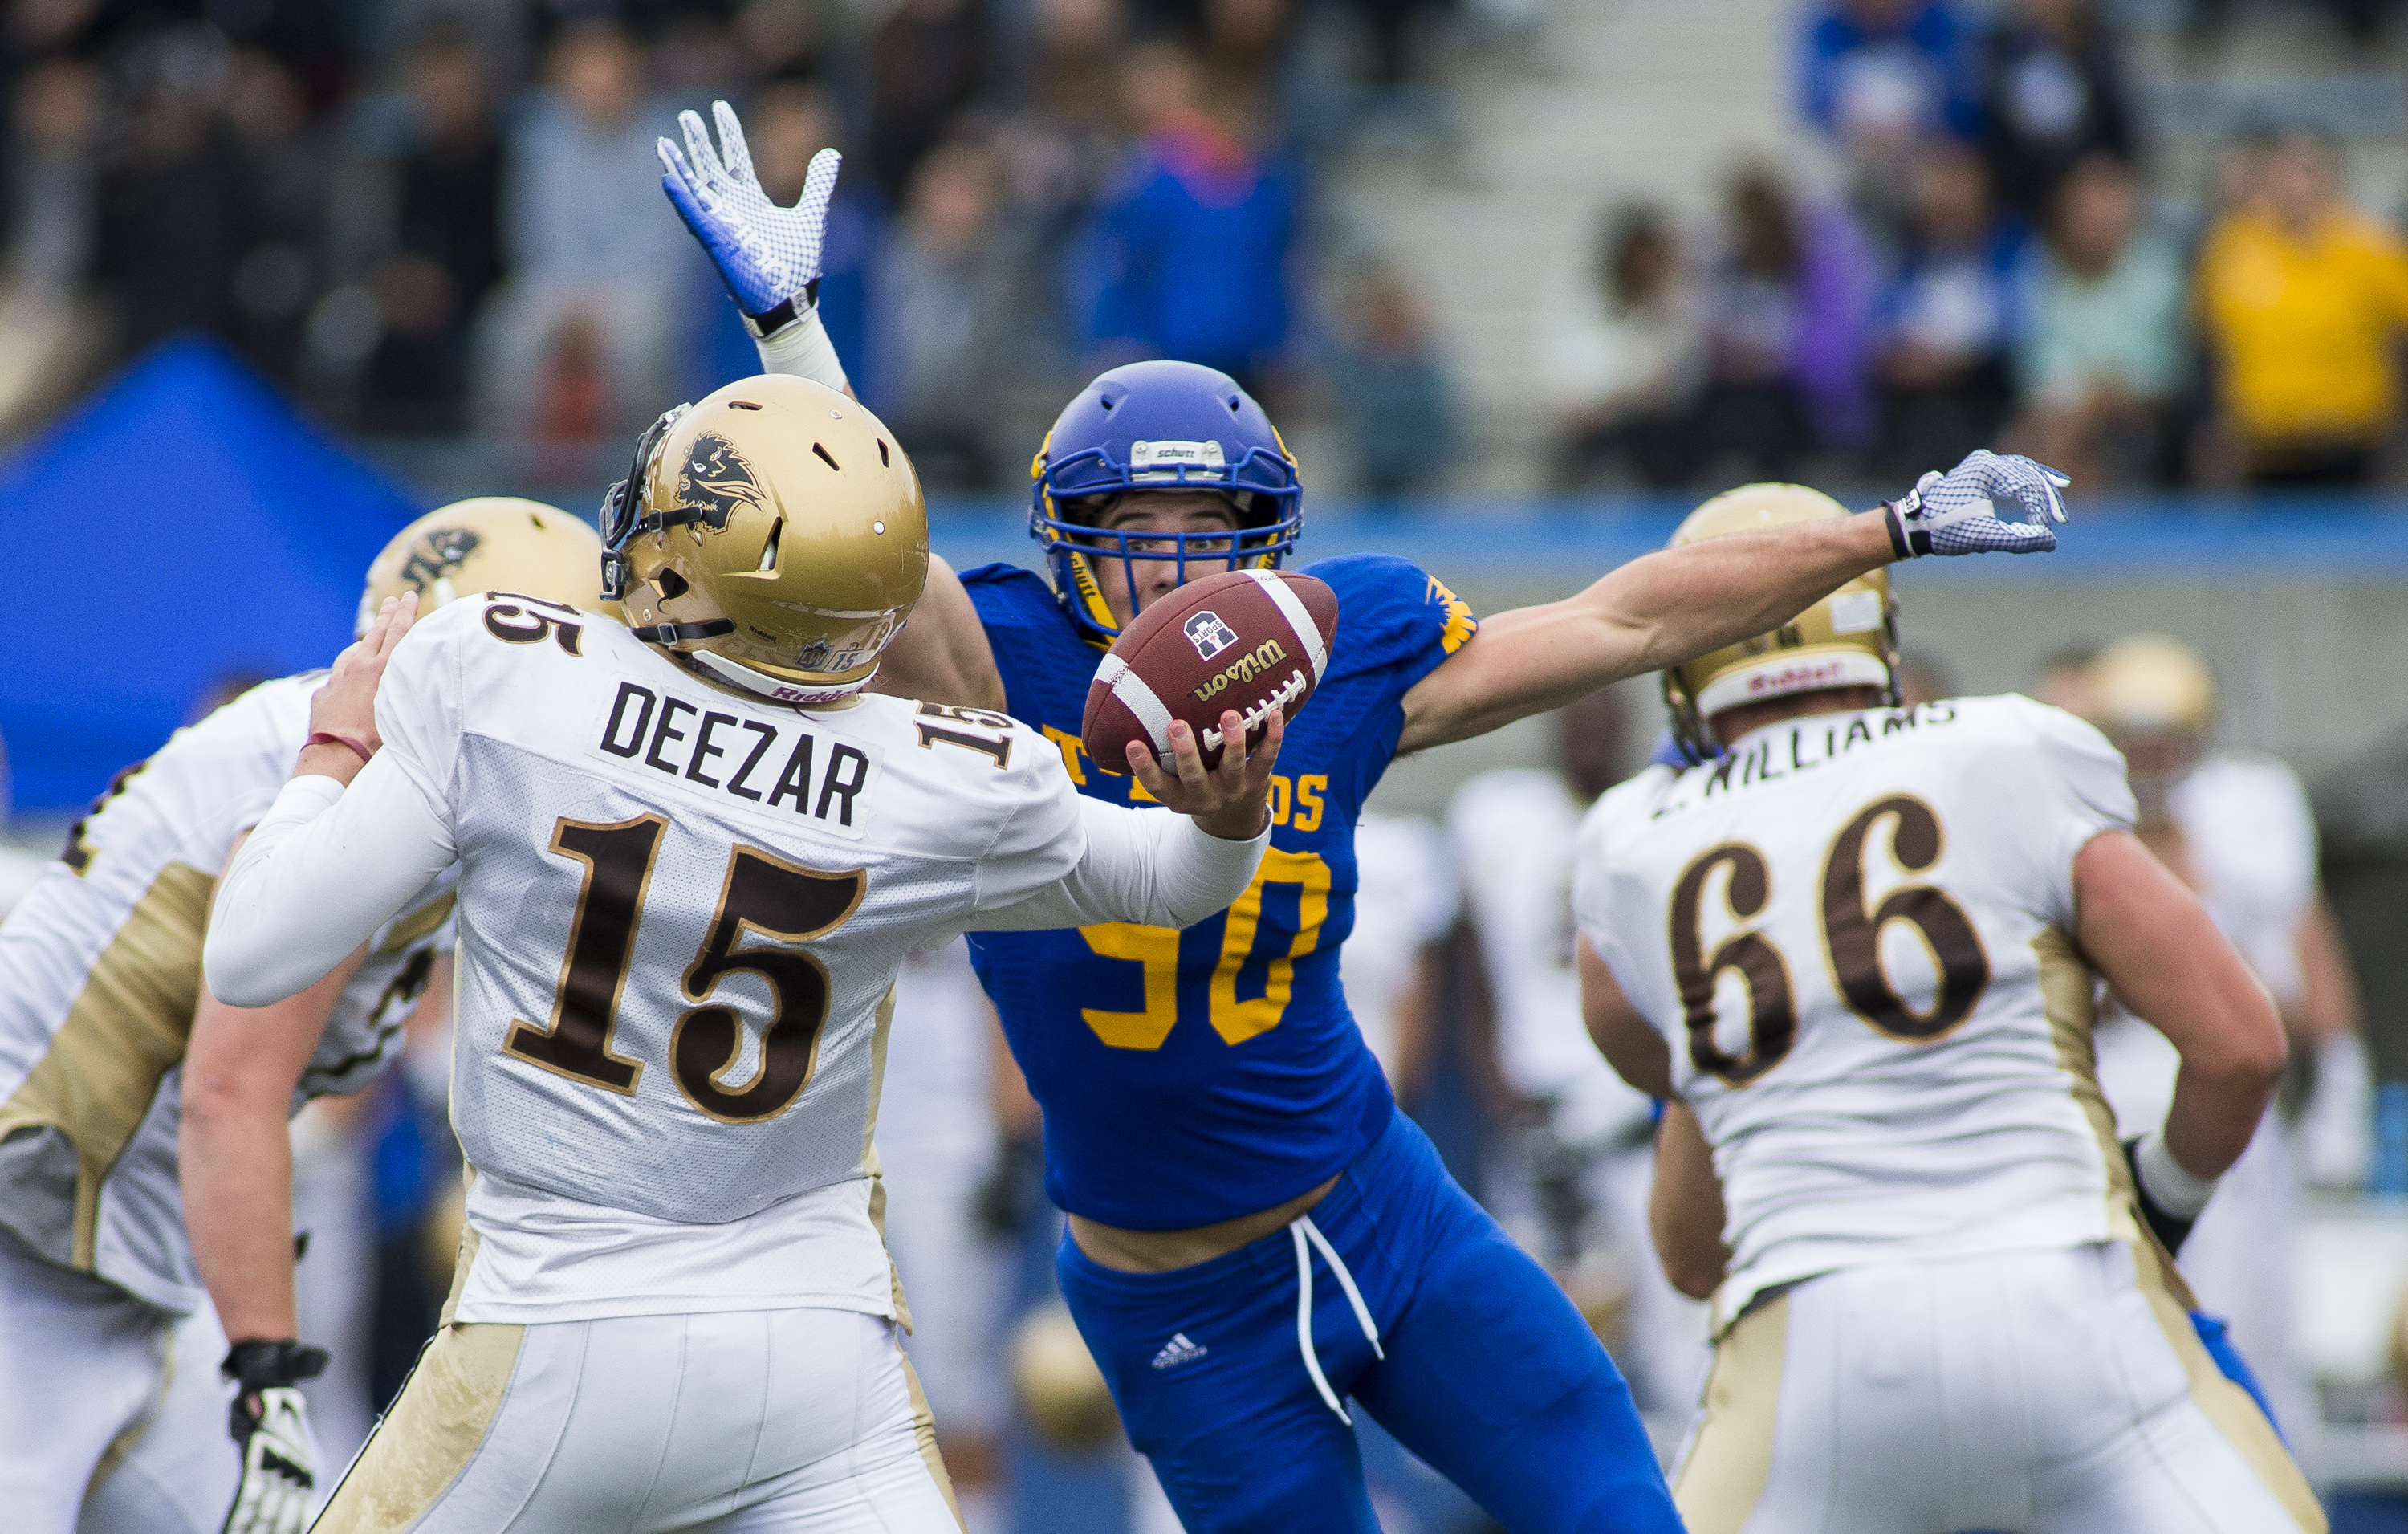 Graham, UBC's #90, is in his first year with the T-Birds. His 107-yard interception return breaks a 17-year-old record in the 'Birds history books.